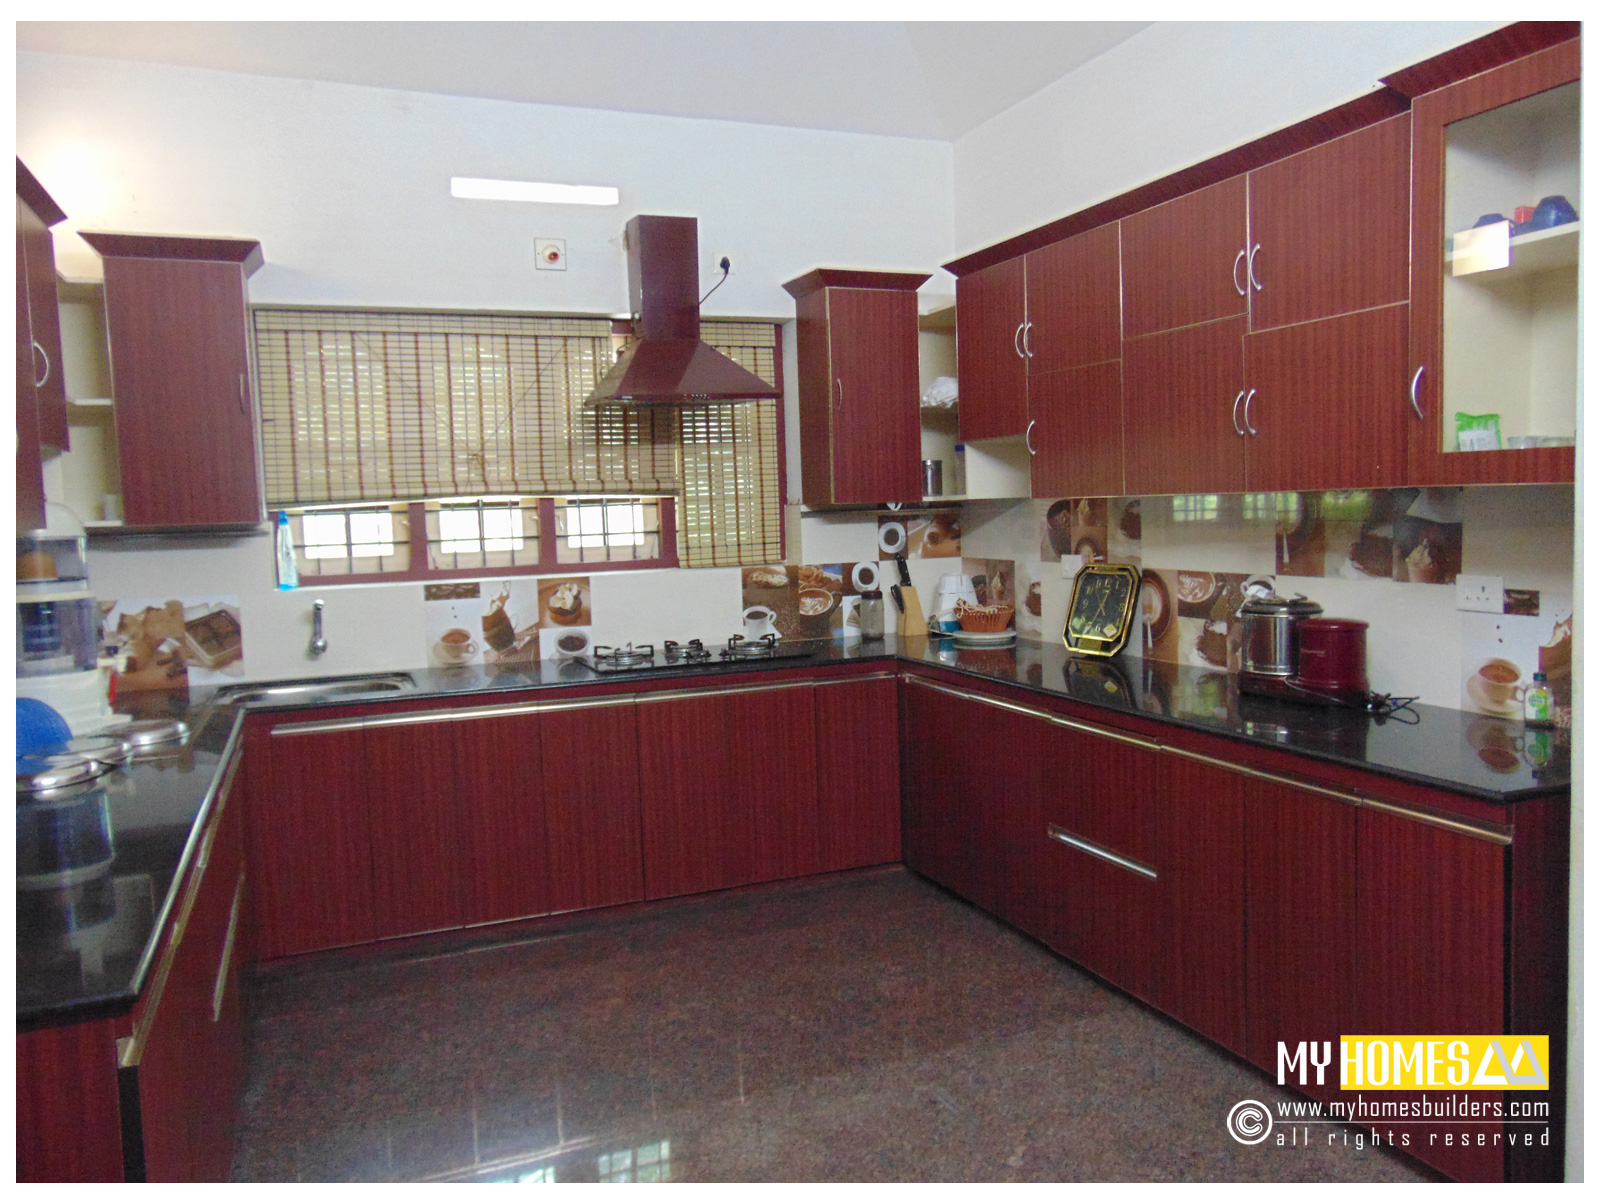 Kerala Kitchen Cabinets Designs Photos kerala style kitchen